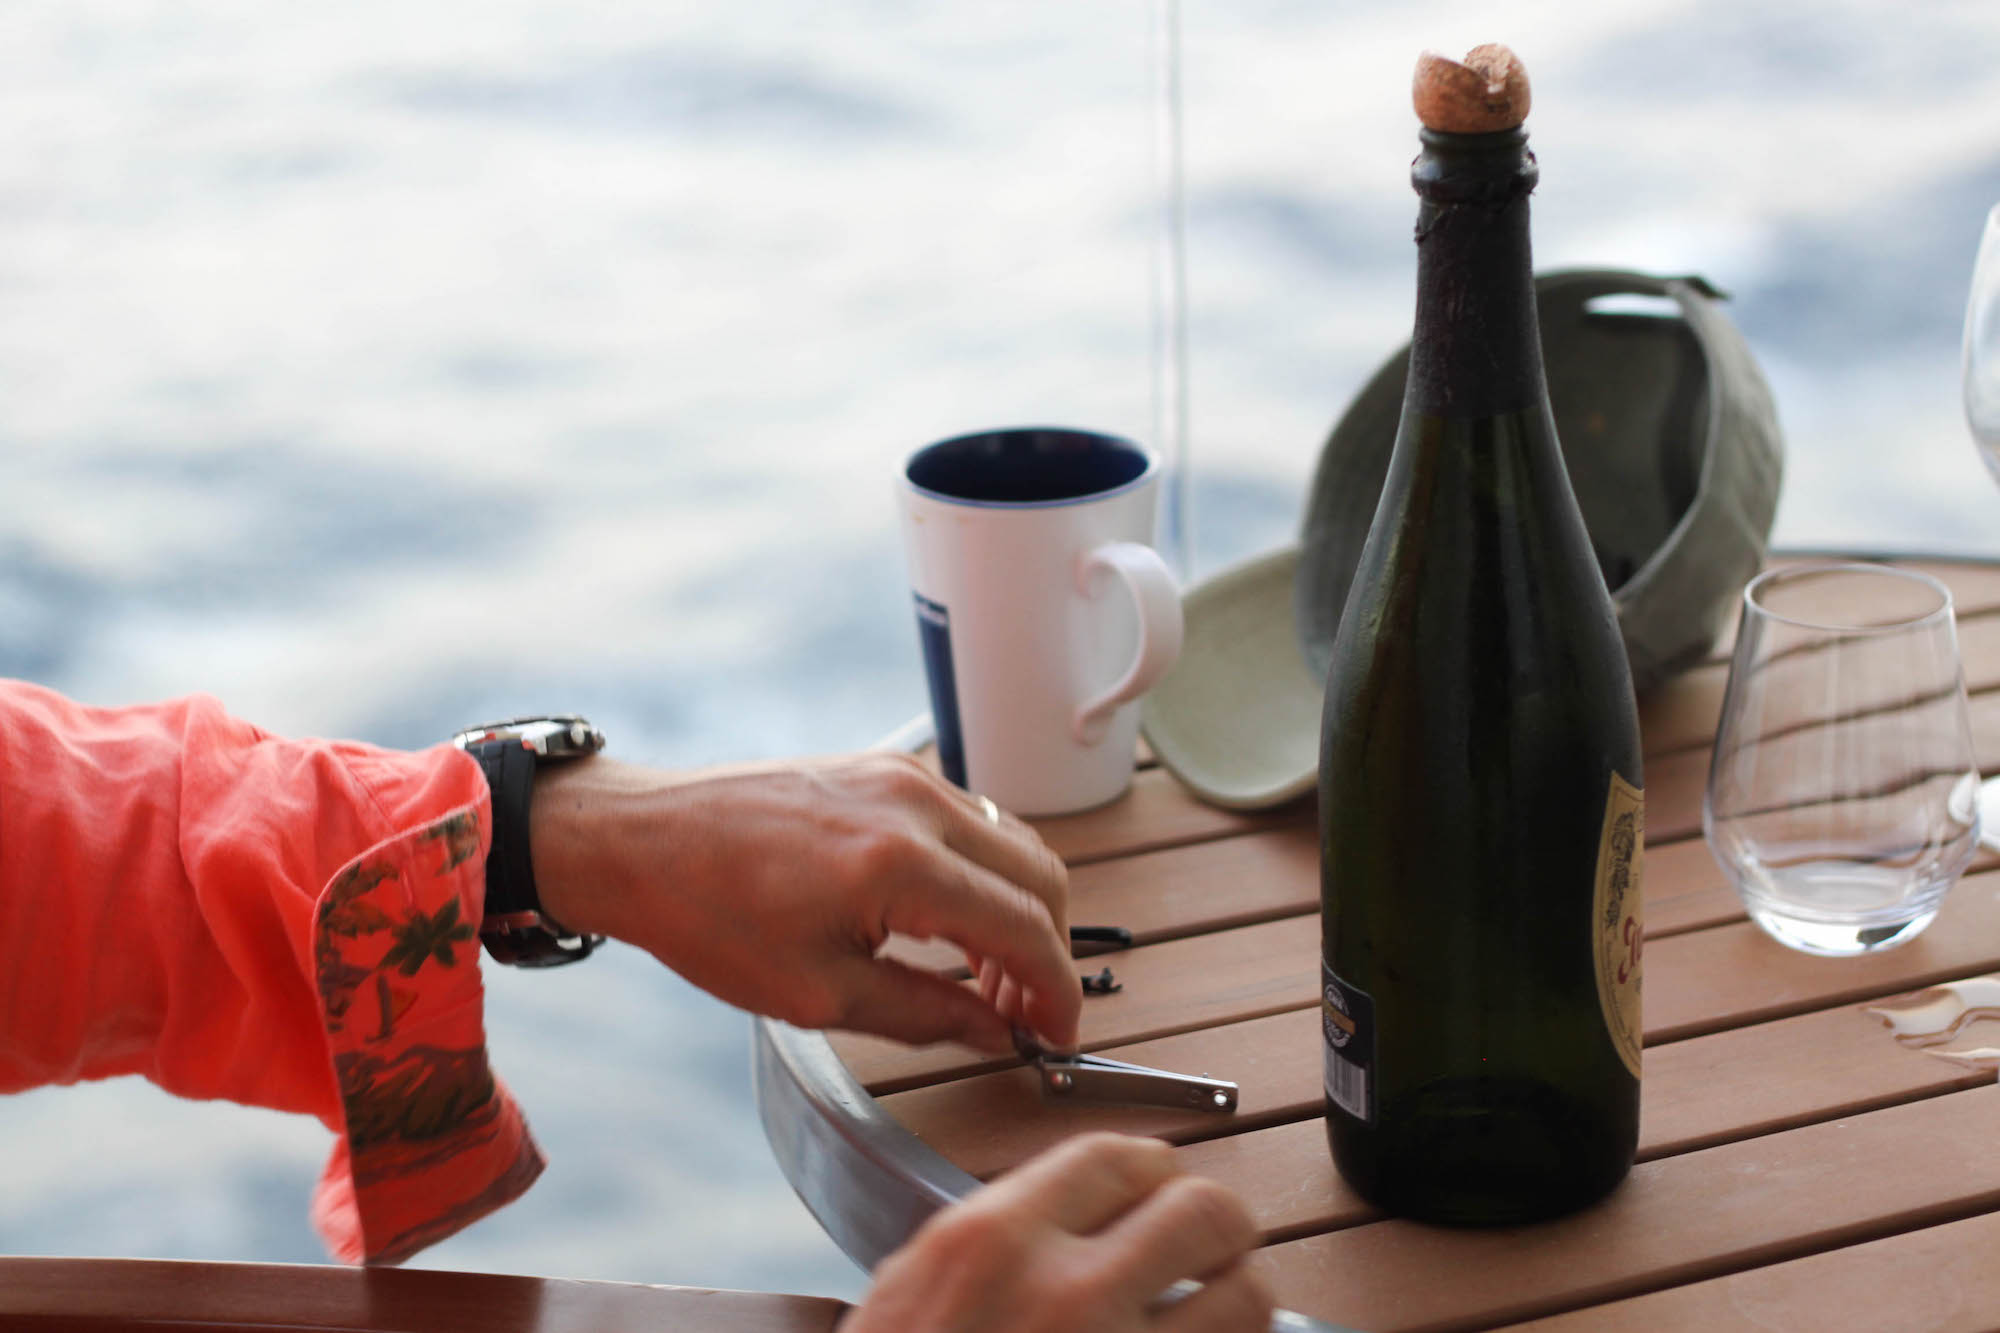 Champagne on the boat (Eat Me. Drink Me.)